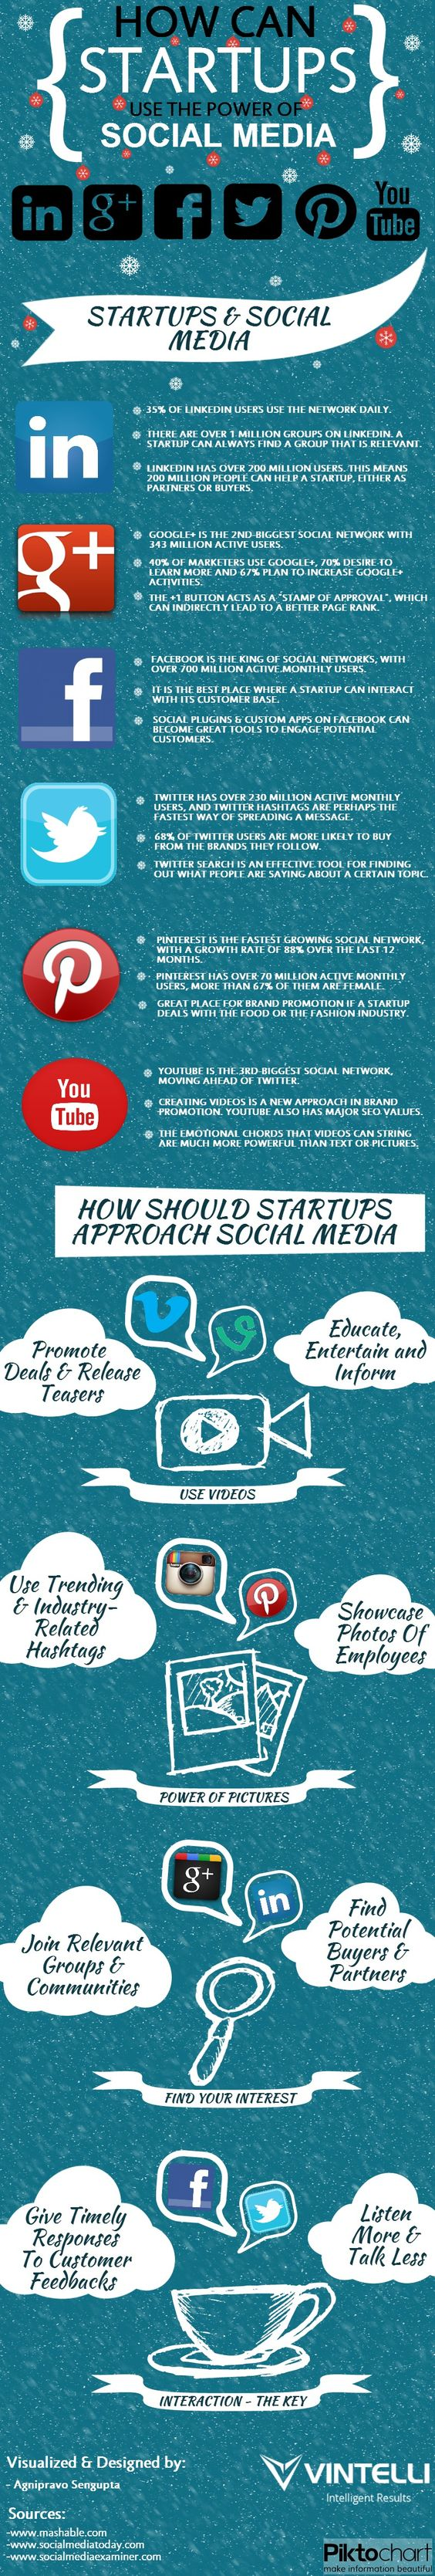 How Can Start-ups Use The Power Of Social Media? Yet another good illustration of how you can market your business using social media.